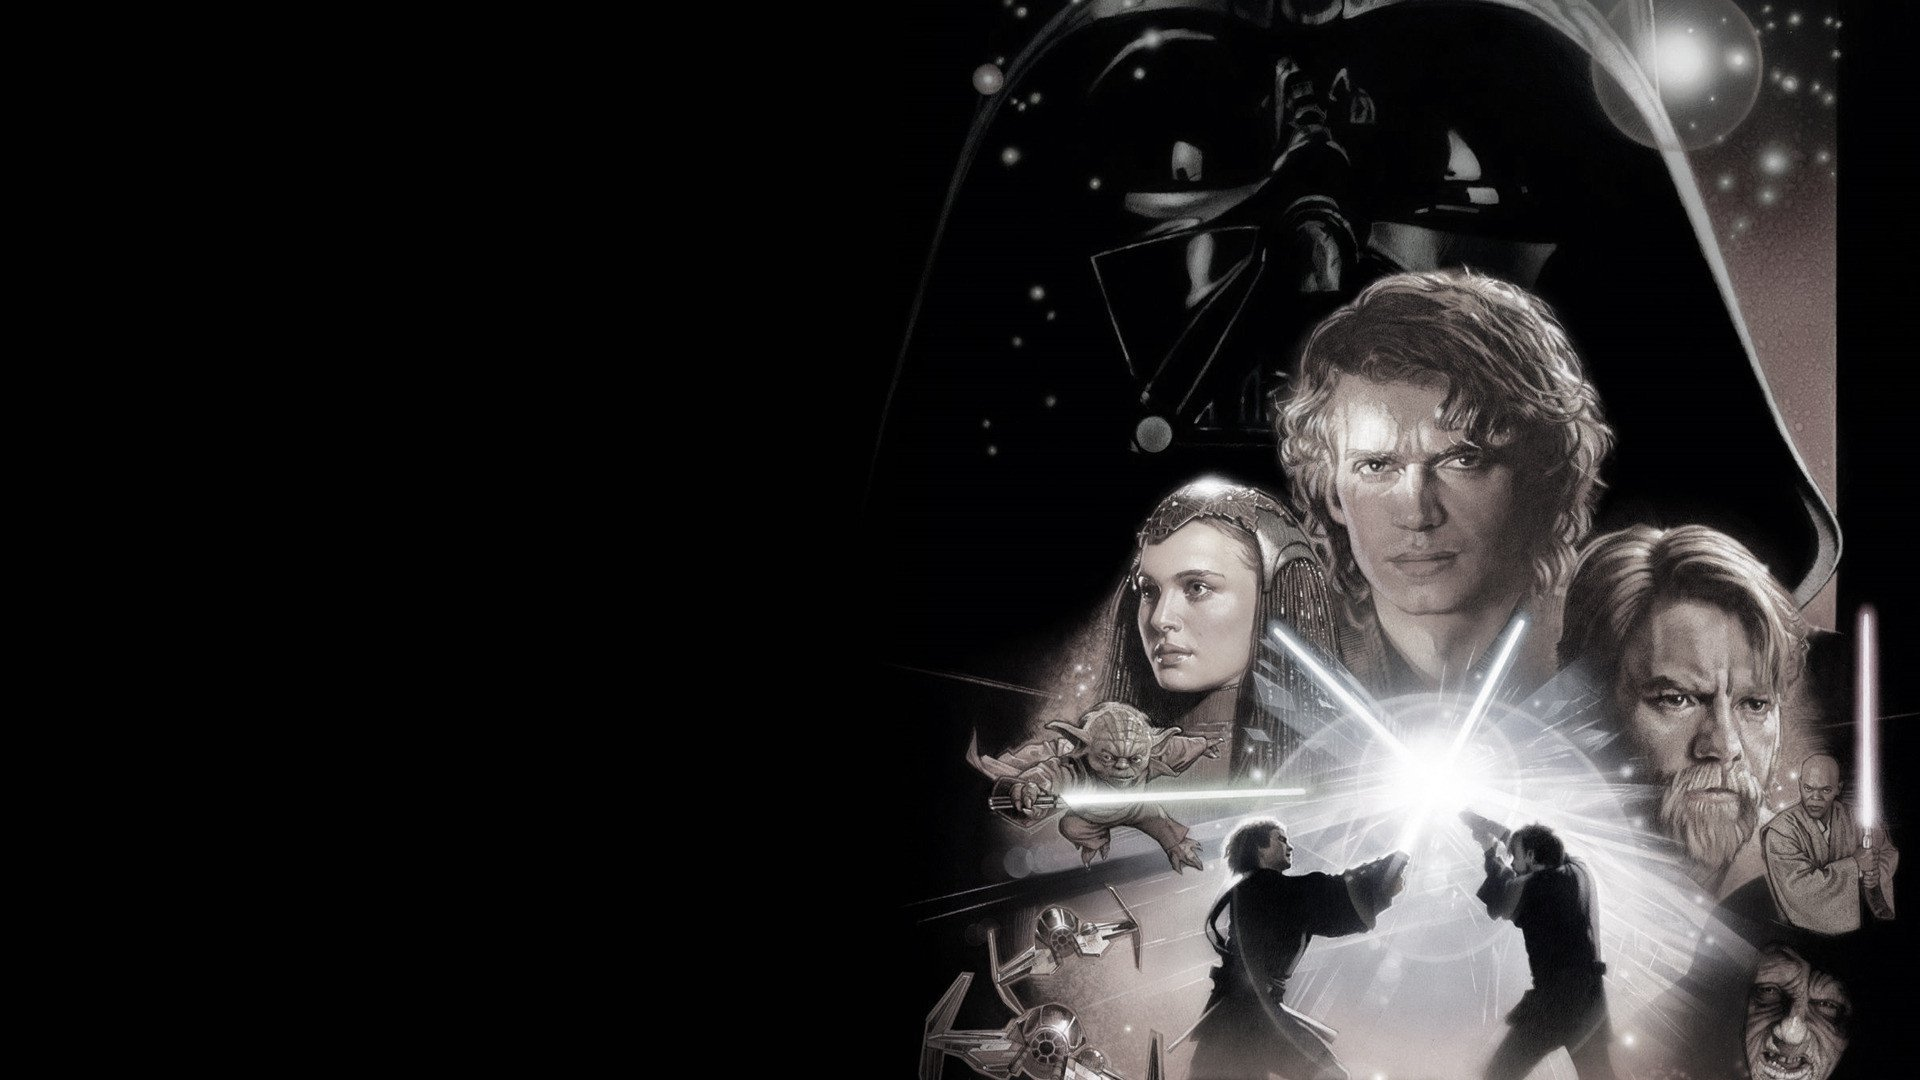 34 Star Wars Episode Iii Revenge Of The Sith Hd Wallpapers Background Images Wallpaper Abyss